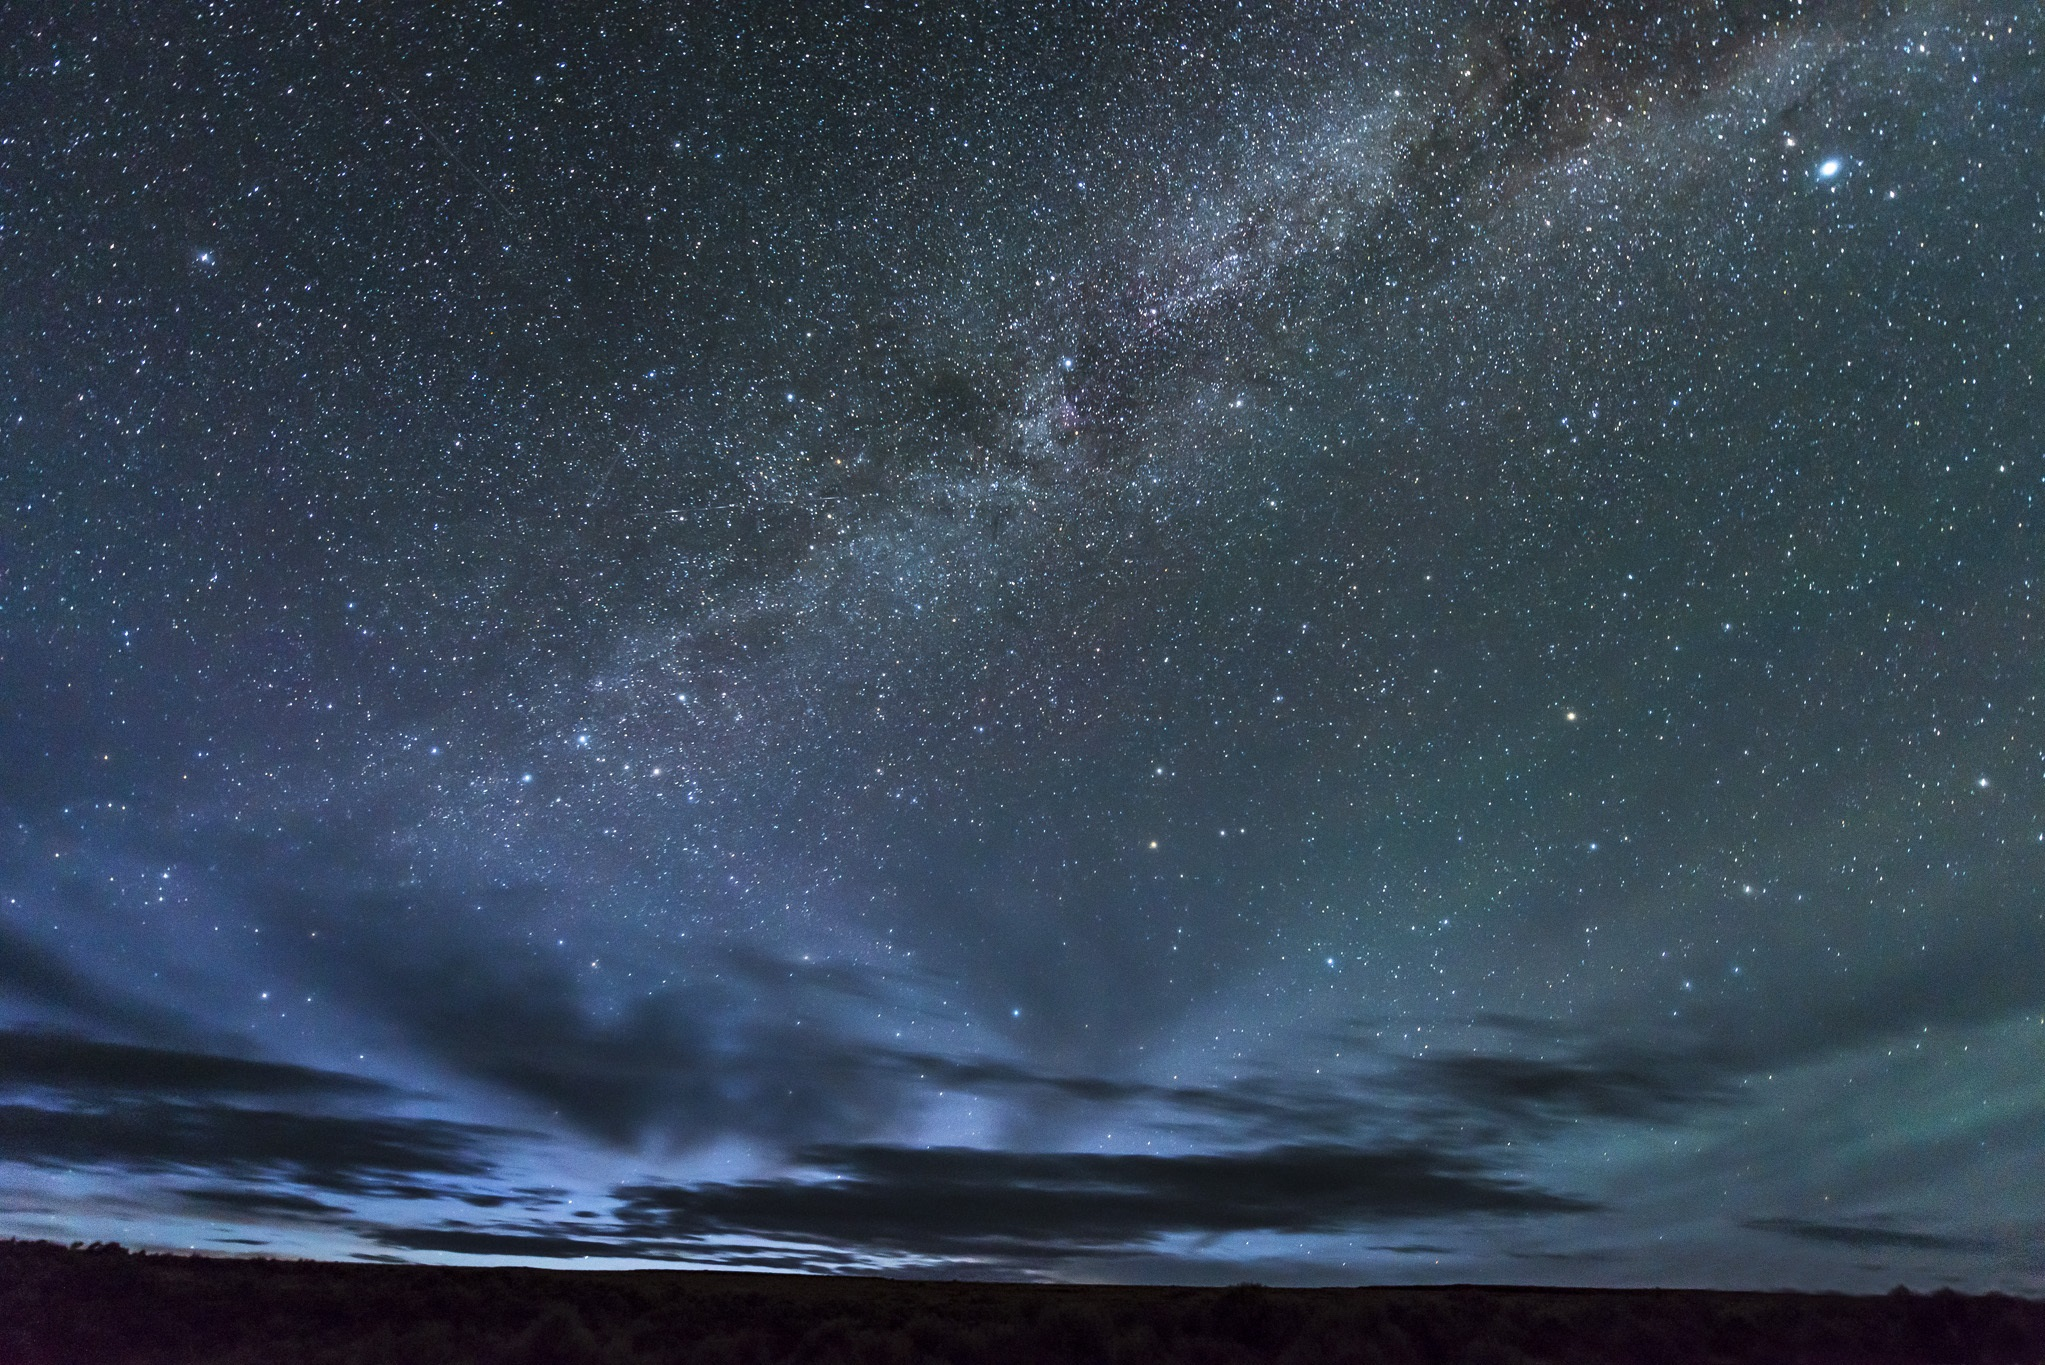 Only the 7th Dark Sky Sanctuary in the world designated in